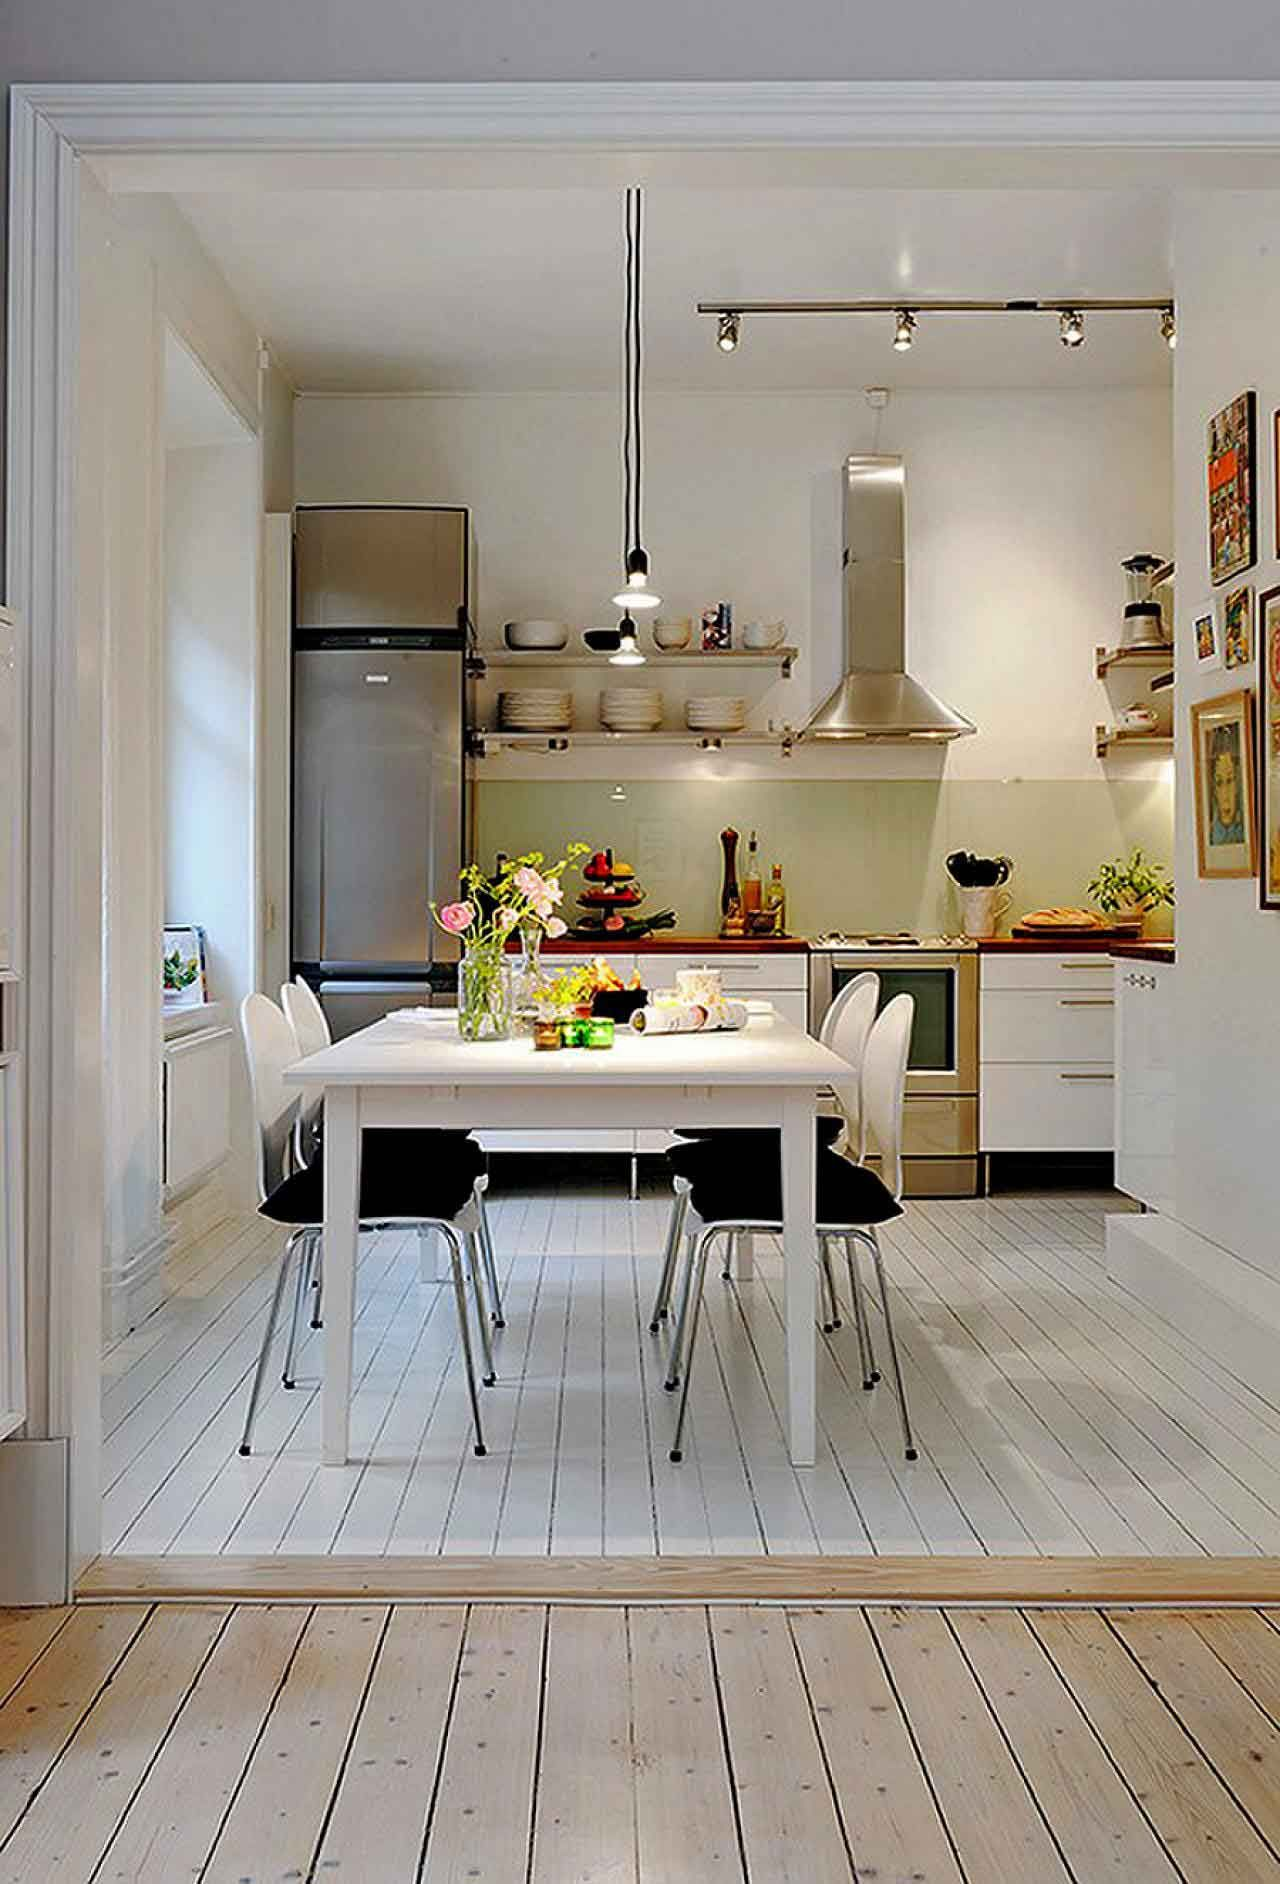 Amusing Kitchen Design For Small Apartment By White Wooden Table ...